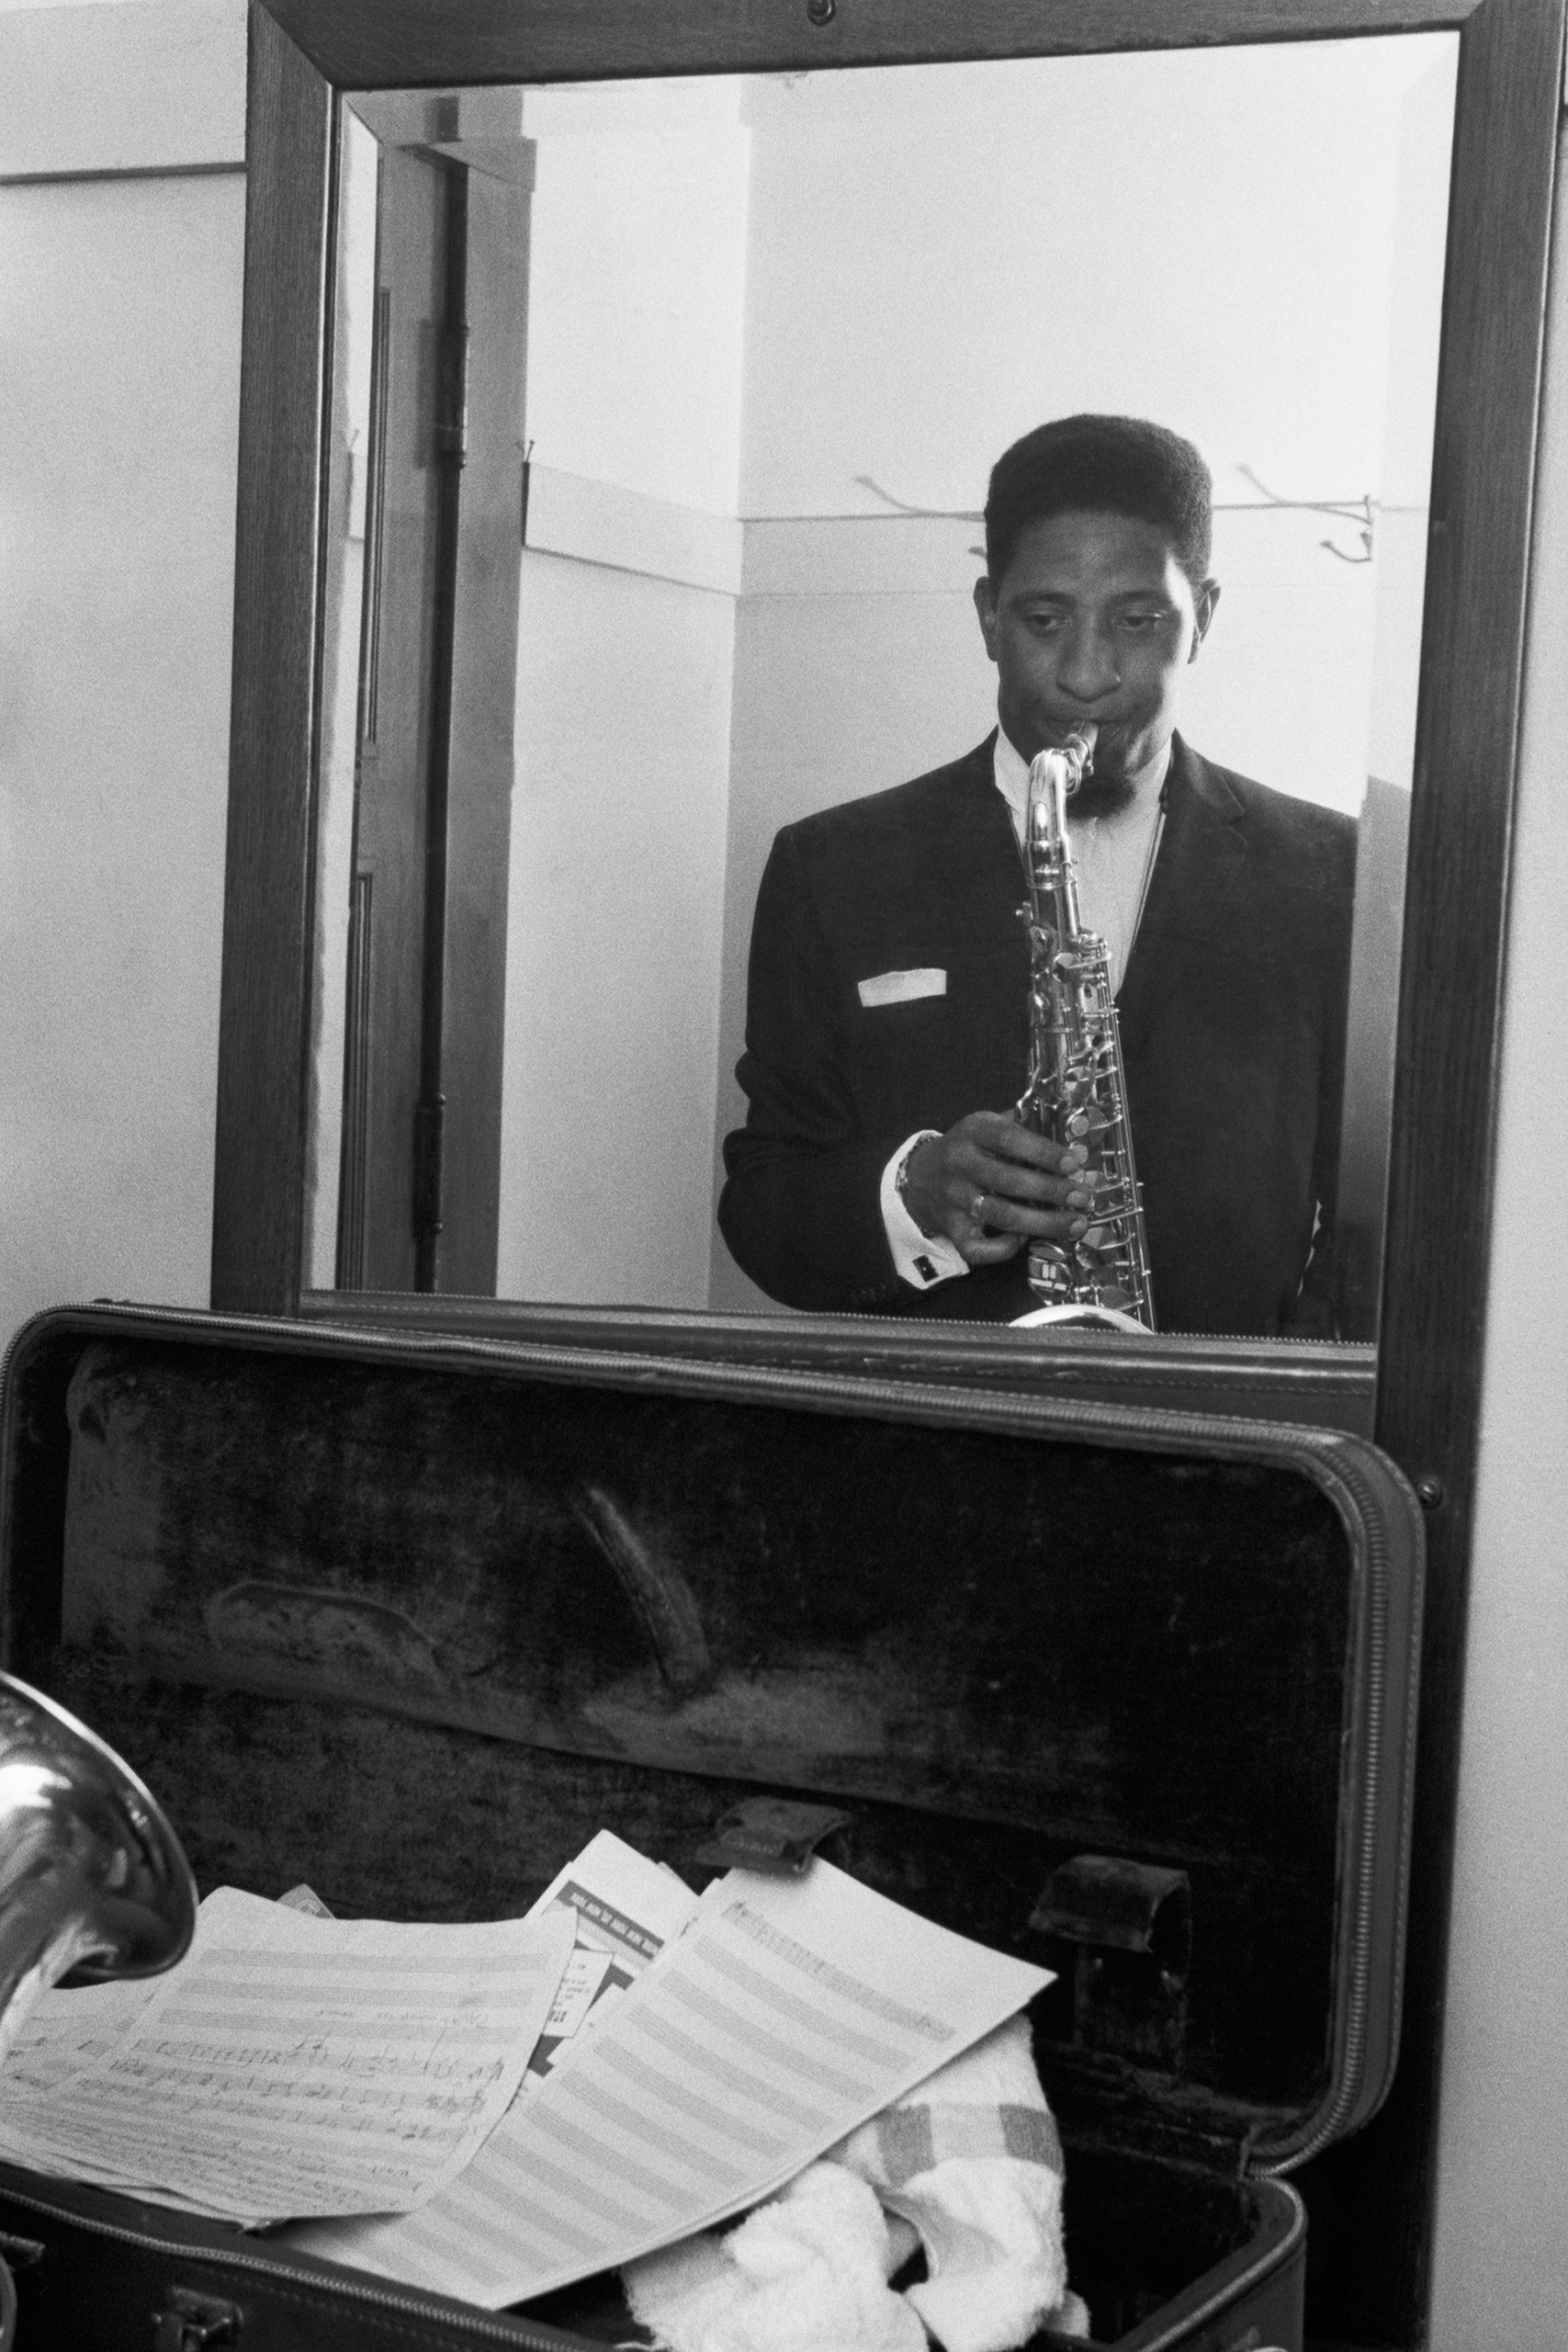 Portrait of American jazz tenor saxophonist Sonny Rollins rehearsing in front of a mirror before a concert at the Civic Opera House, Chicago, US, 1956.